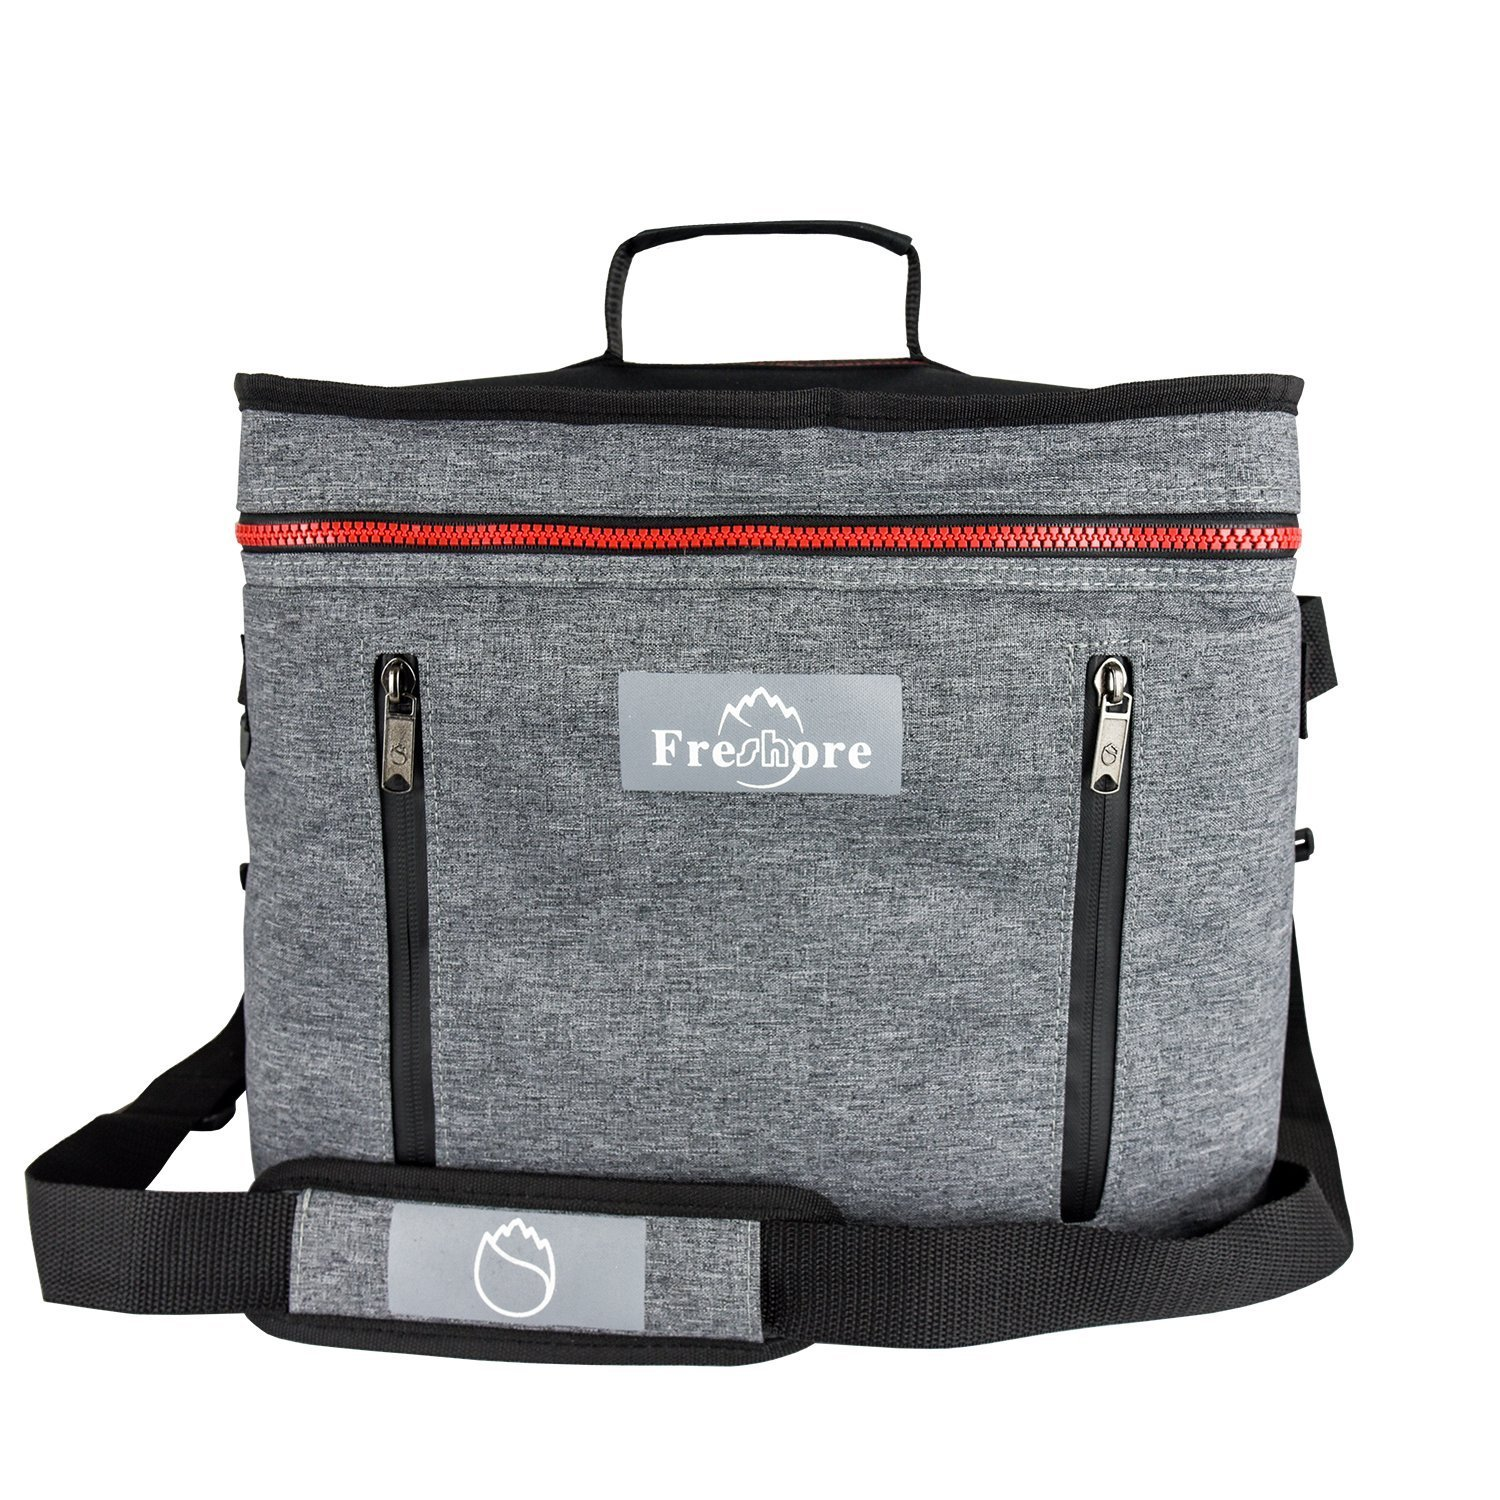 Freshore Collapsible Travel Large Portable Insulated Folding Cooler Compartment Thermal Bag - Meal Prep Big Lunch Box Backpack Picnic Car Tote With Adjustable Strap (Dark Grey)